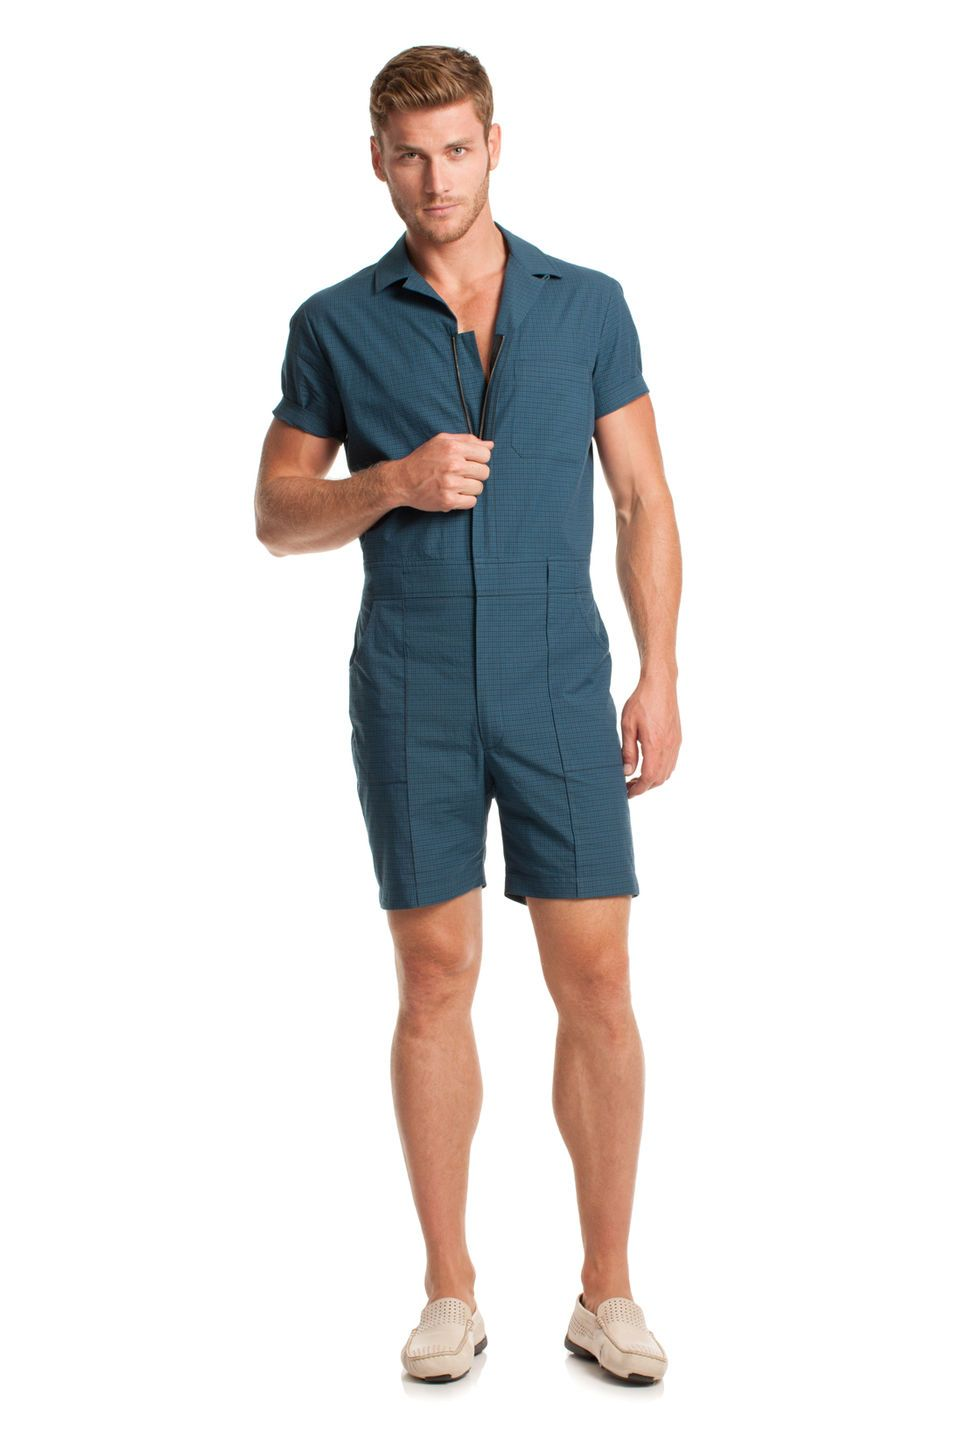 2a5d0711562 Rompers for men